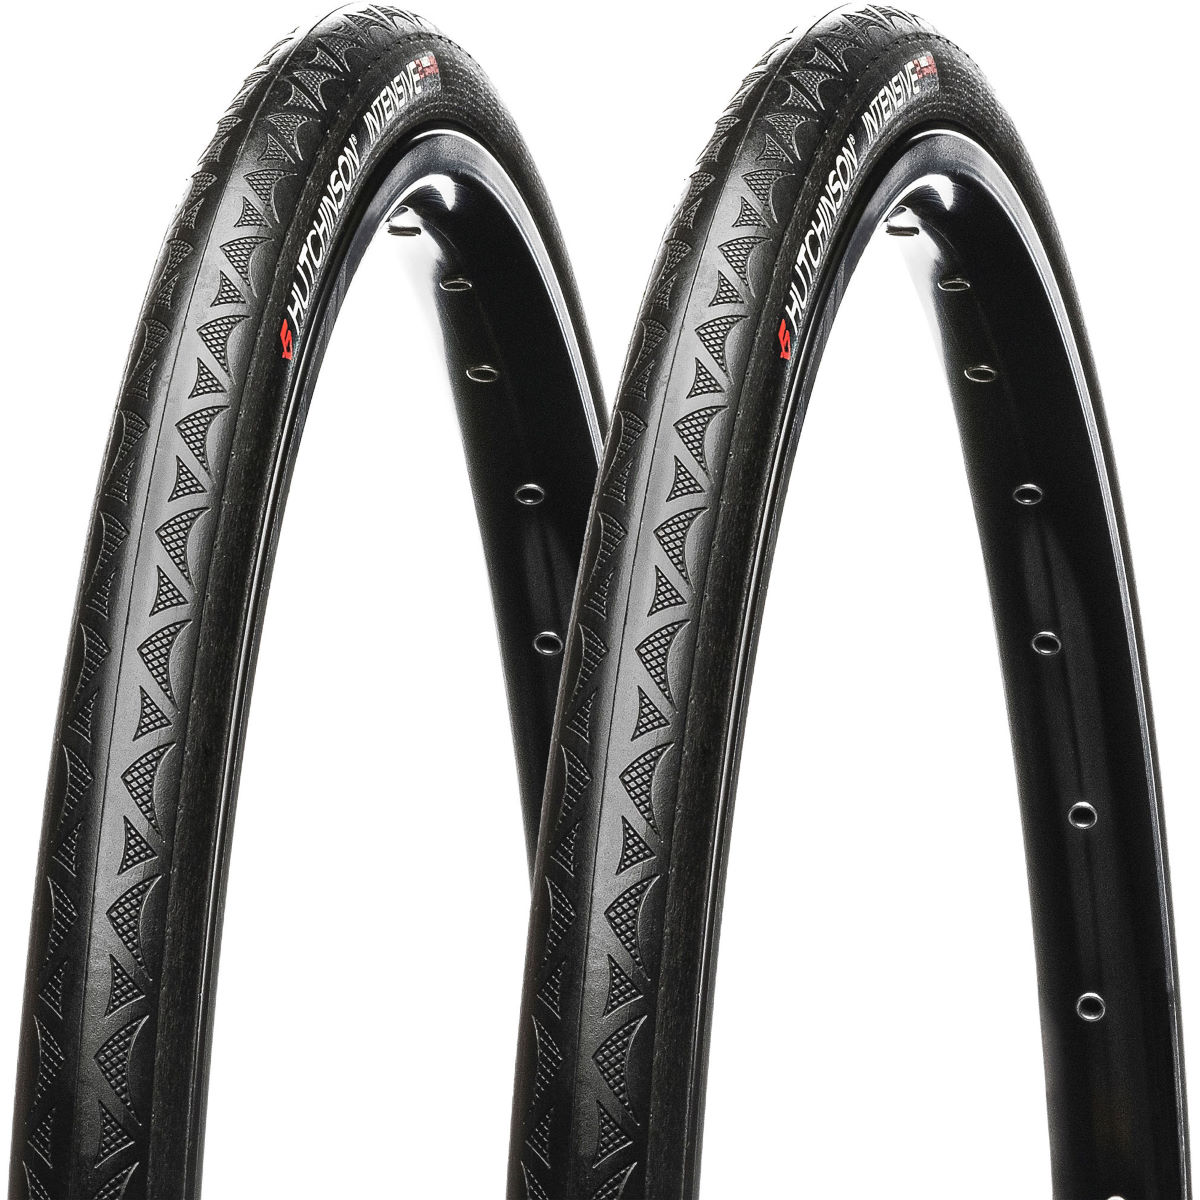 Hutchinson Hutchinson Intensive 2 Tubeless Folding Road Tyres - Pair   Tyres